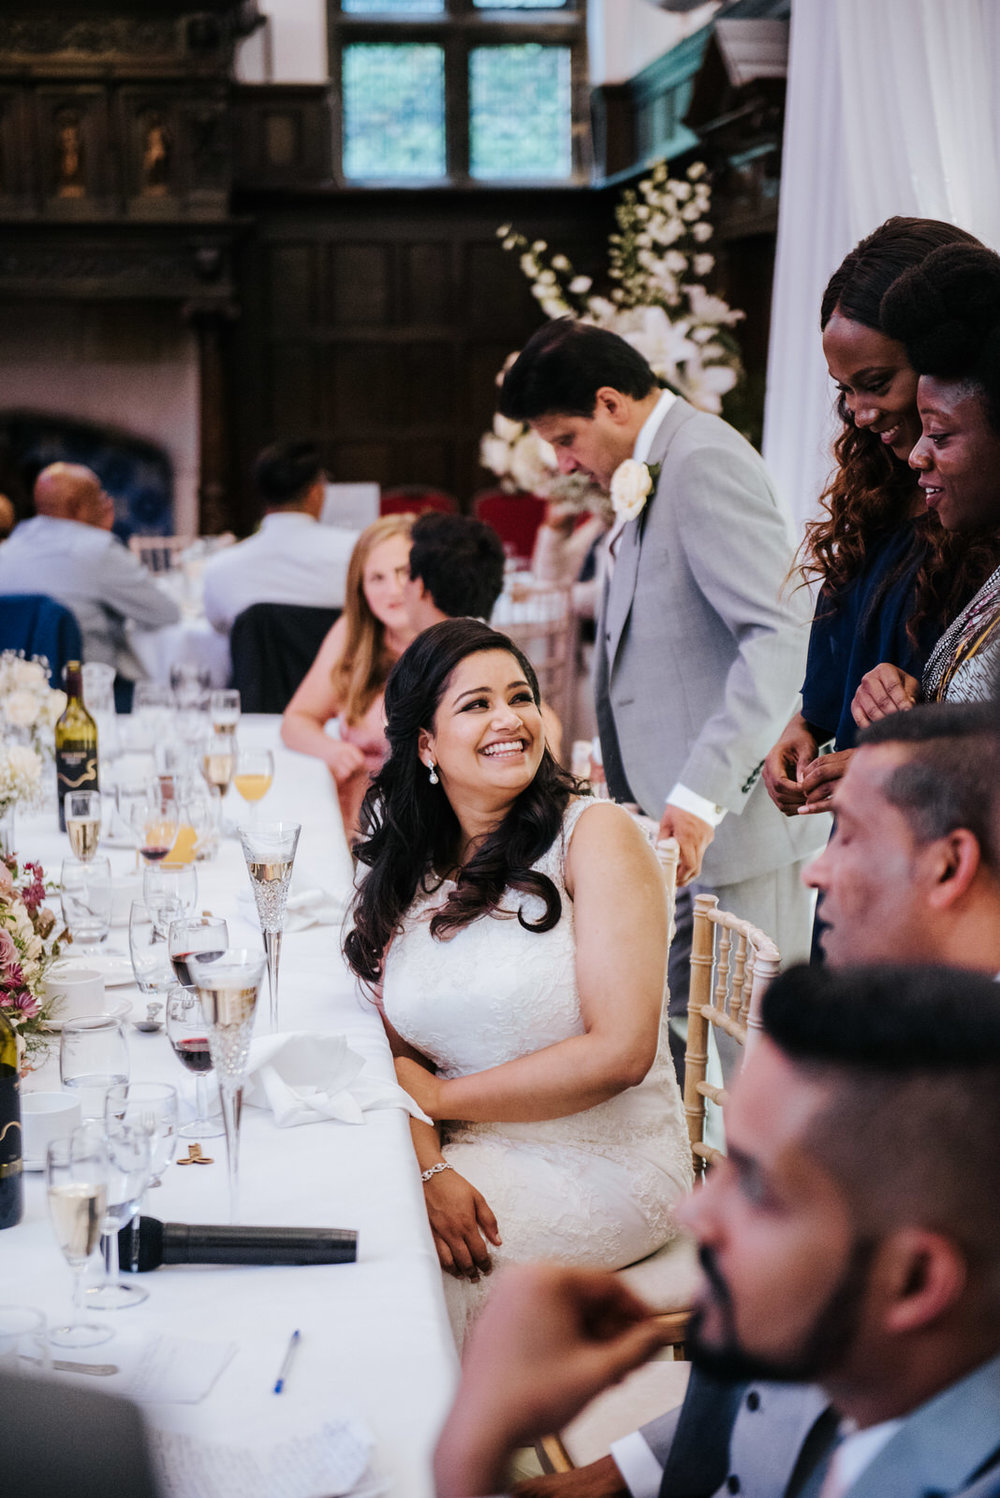 Bride can't stop smiling as she entertains two guests that came